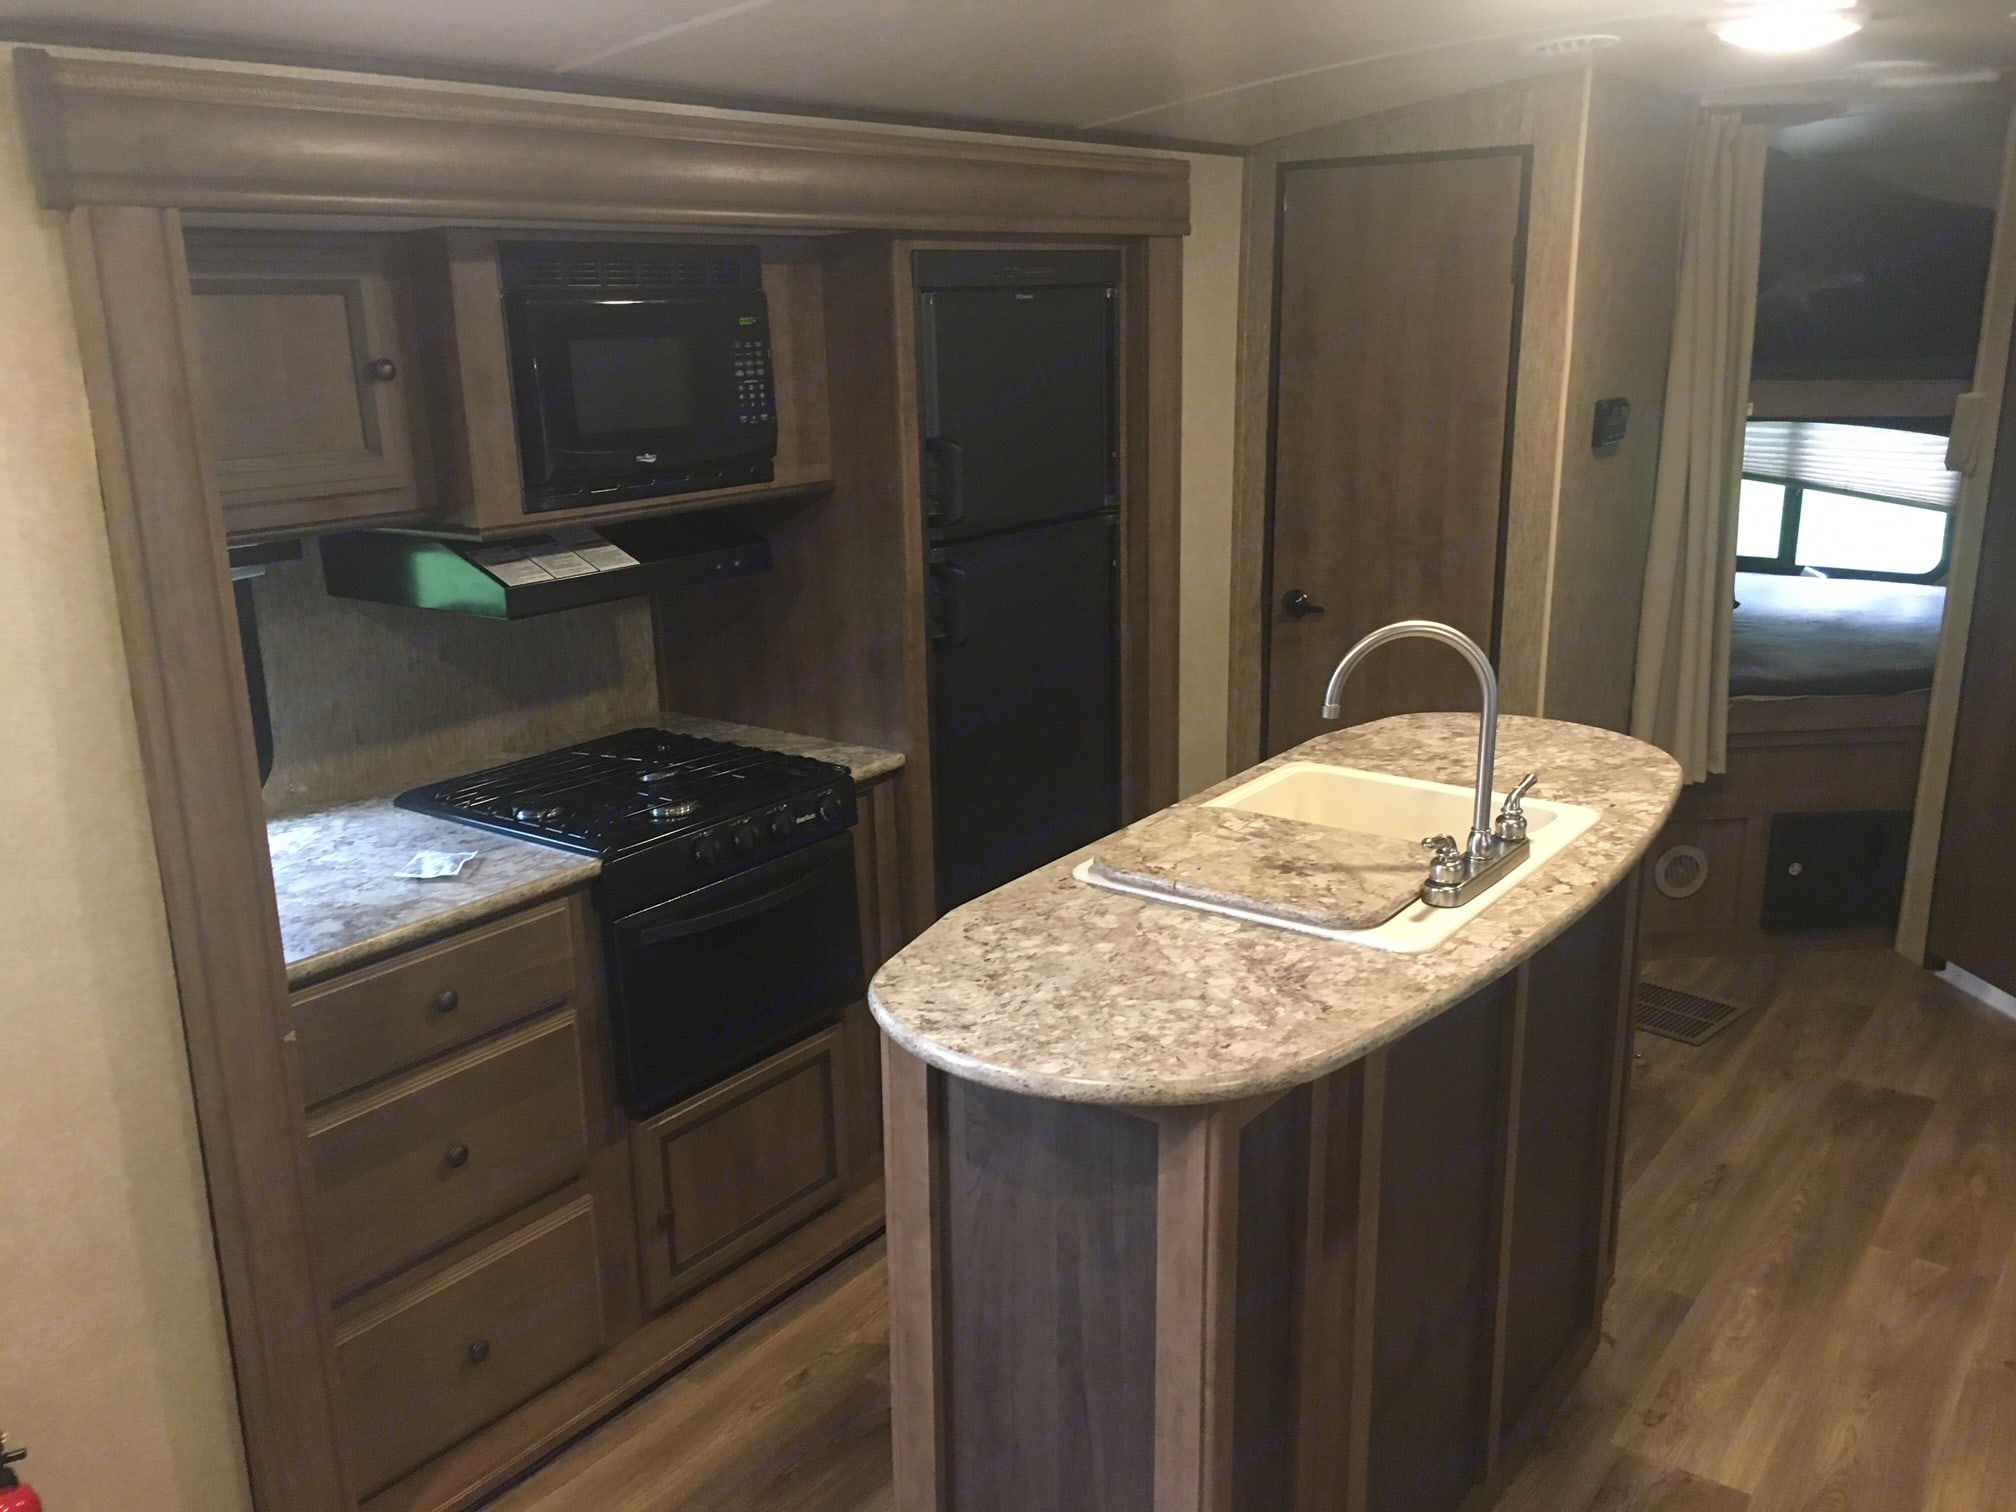 Kitchen includes propane/electric fridge, island with double sink, microwave, gas range/oven, as well as plenty of storage.. Cruiser Rv Corp Shadow Cruiser 2016